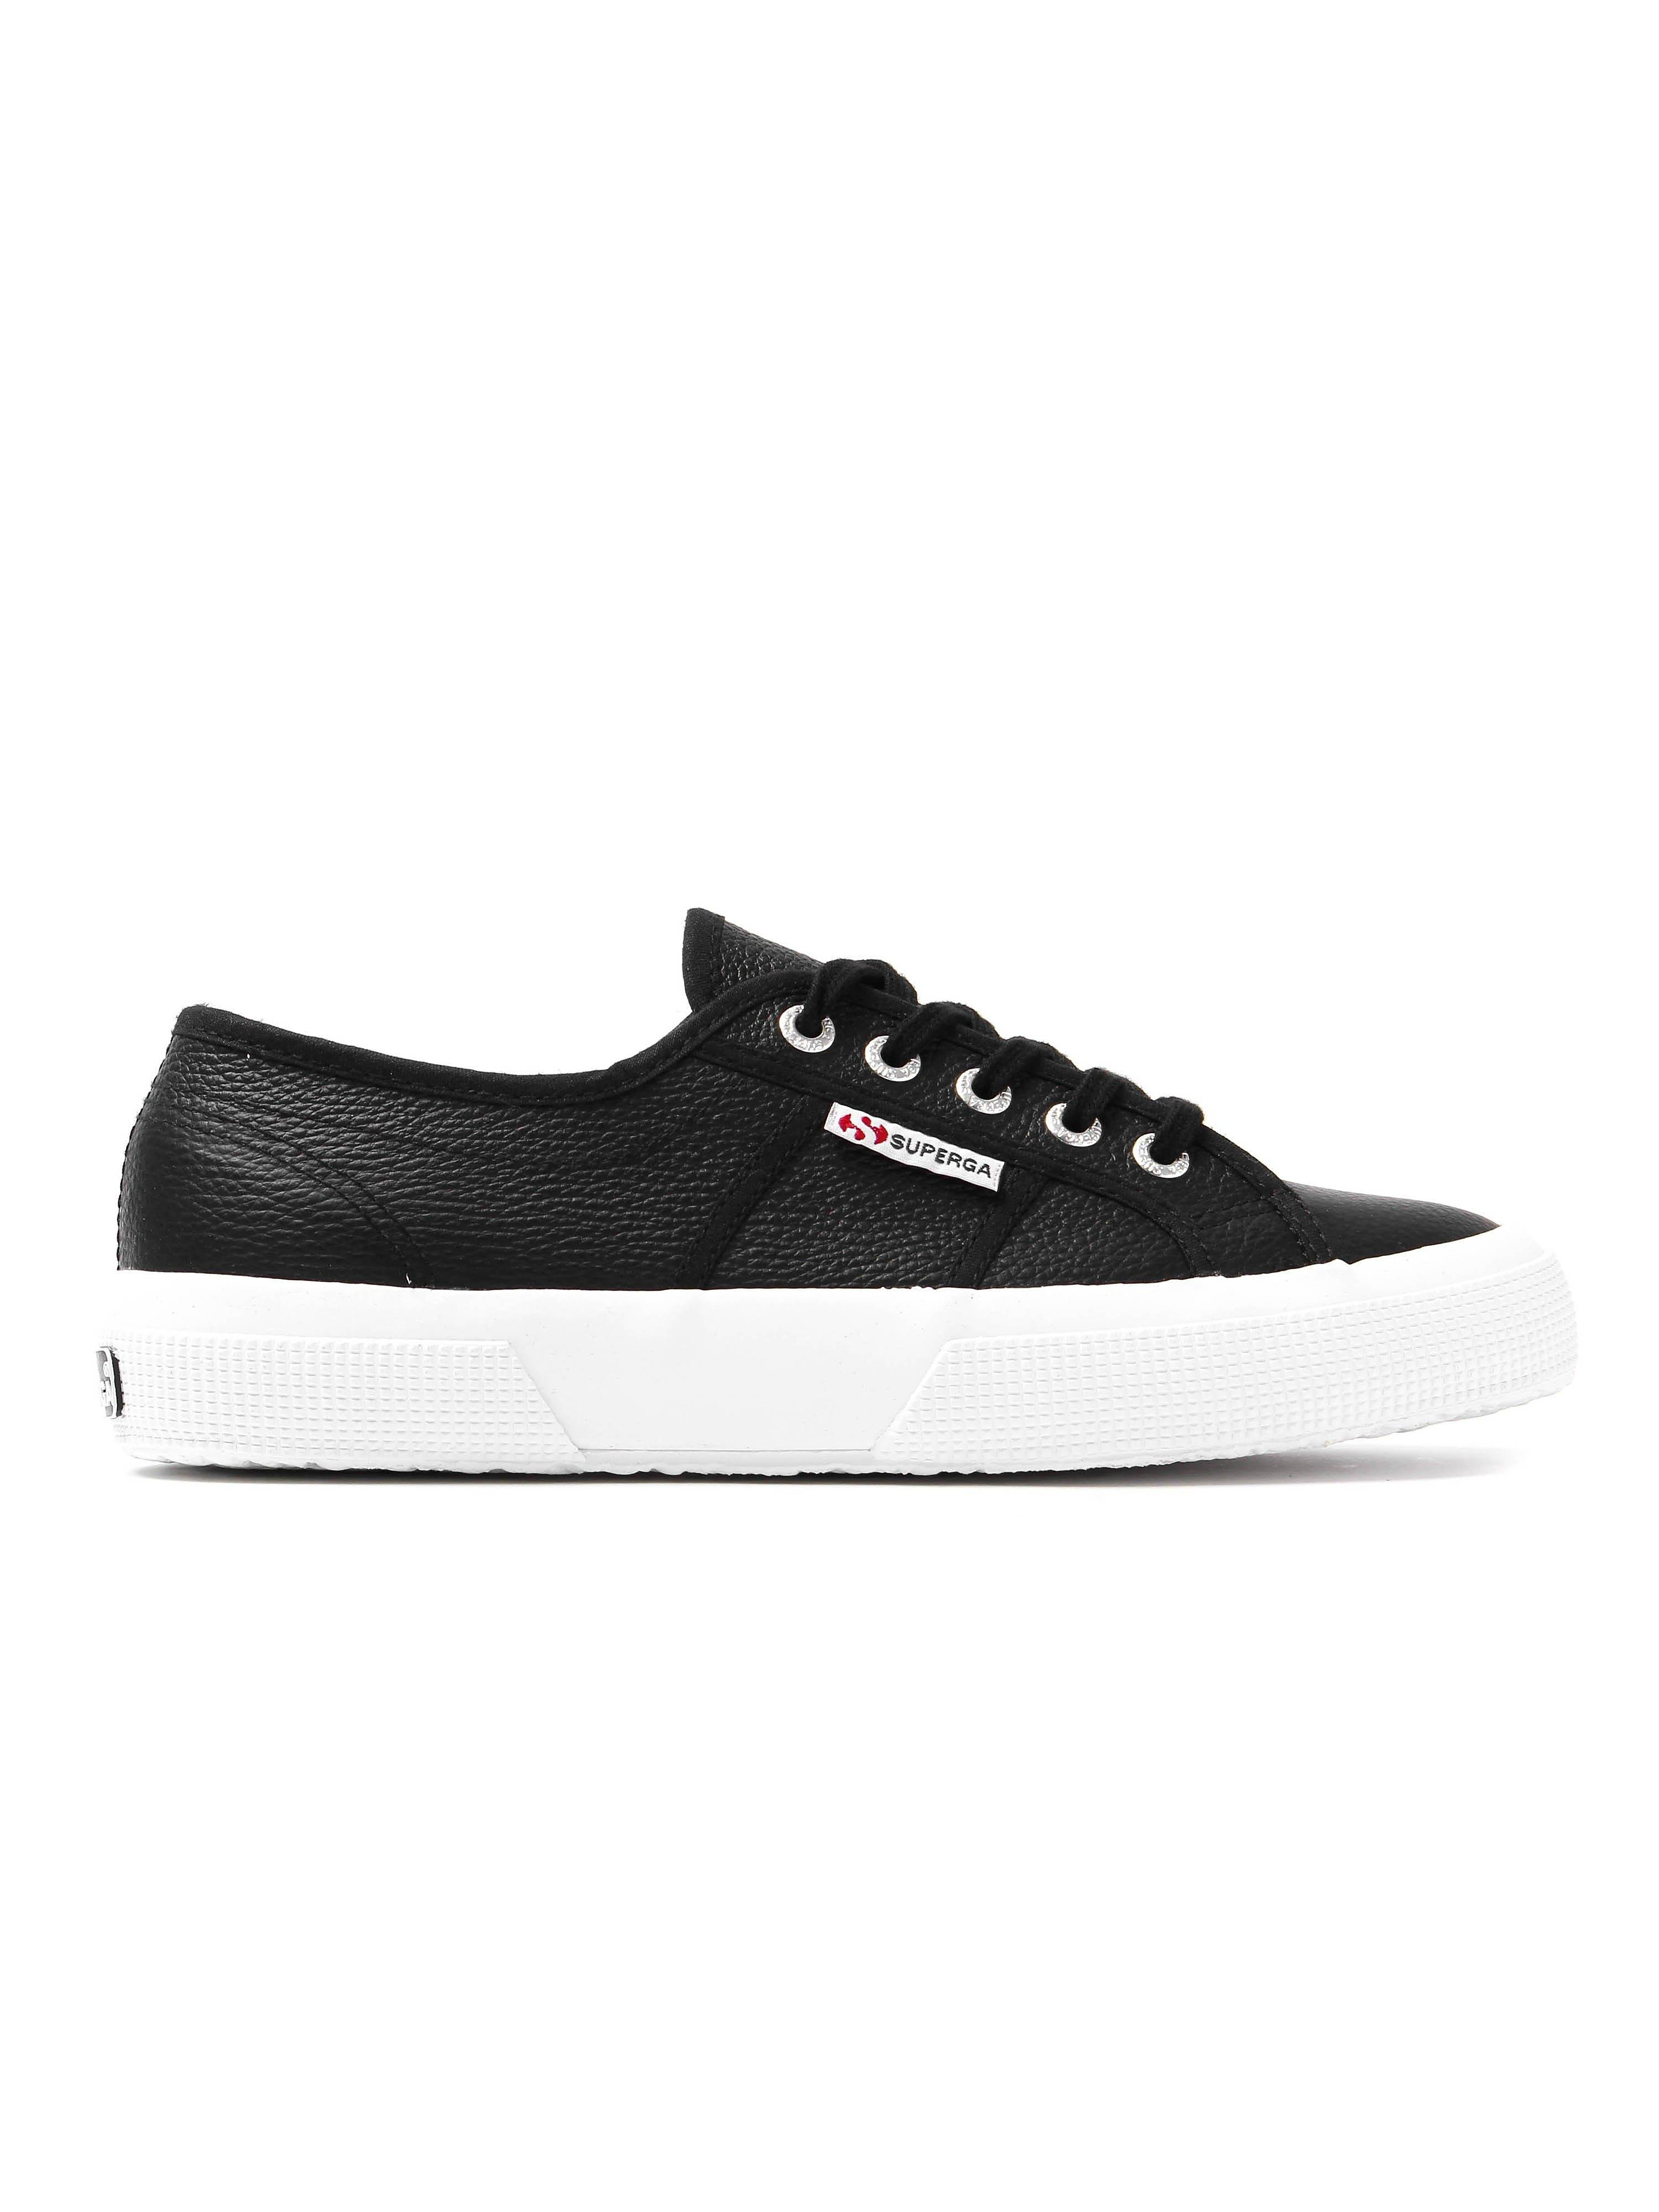 Superga Womens 2750 EFGLU Trainers - Black Leather